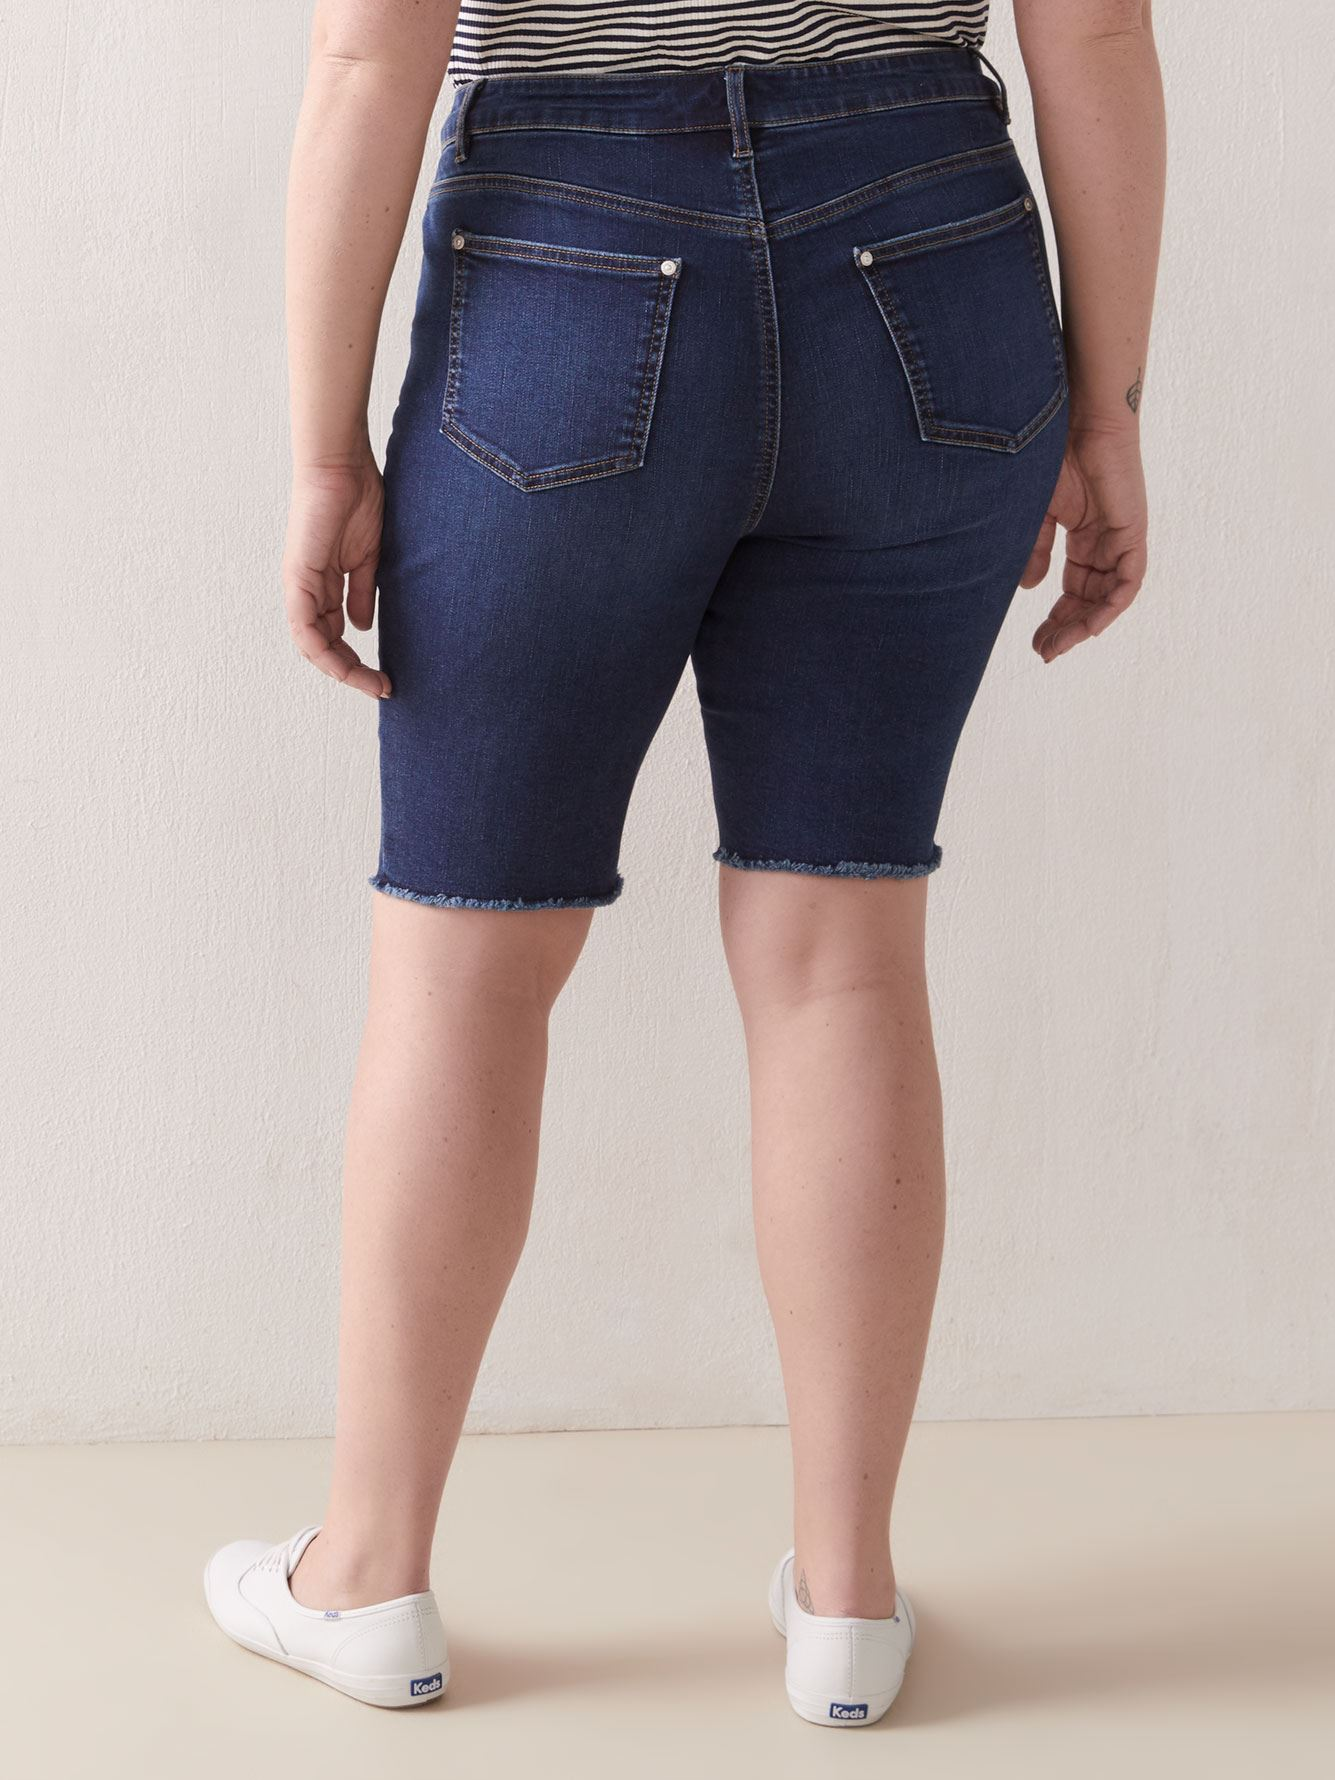 Dark Wash Denim Short - Addition Elle